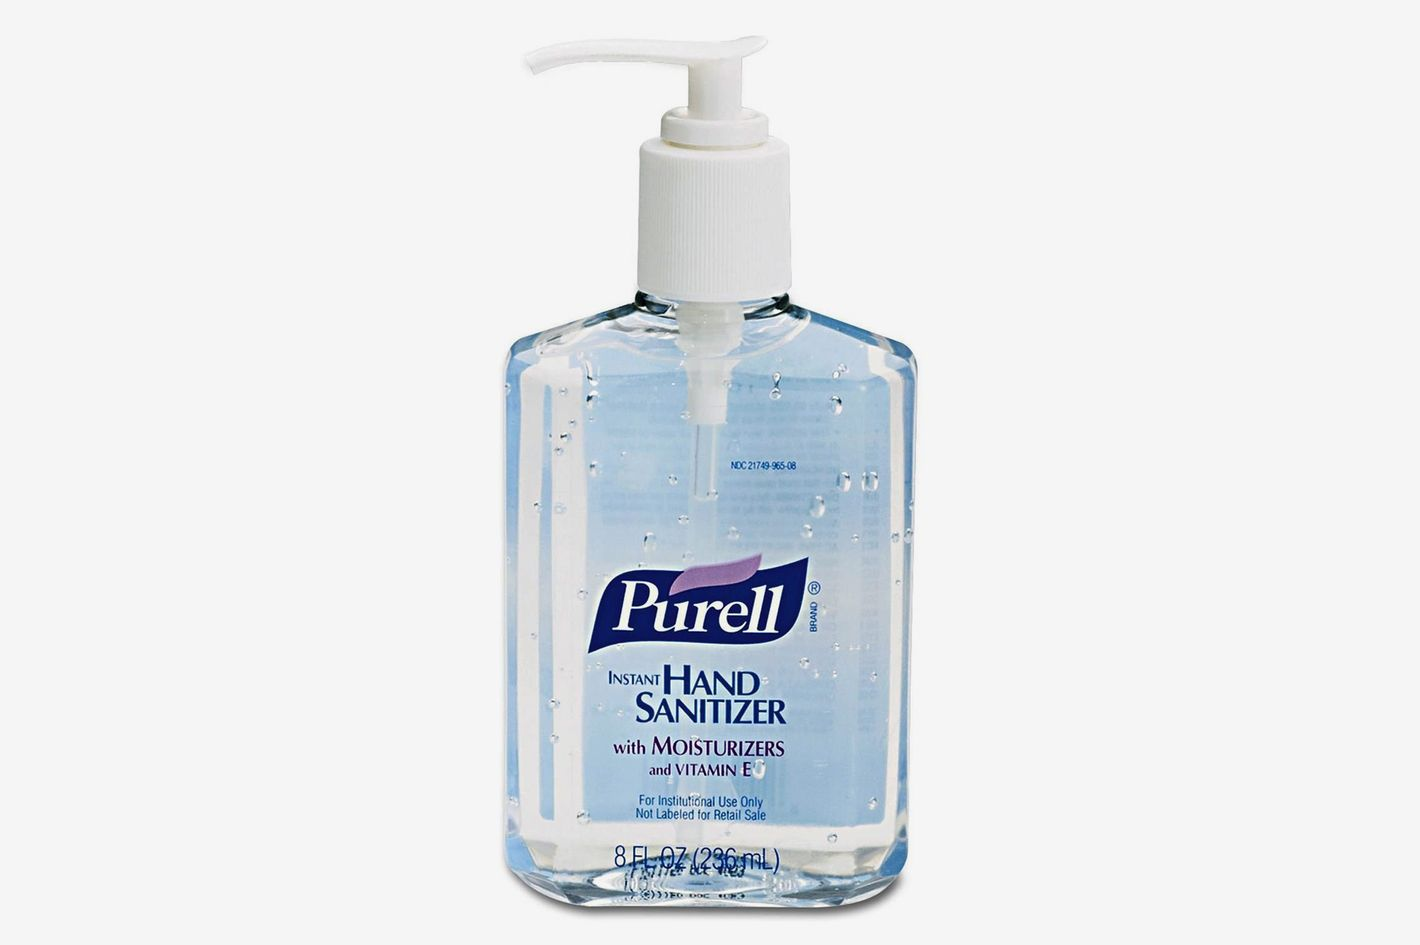 Purell Advanced Hand Sanitizer Refreshing Gel, 8 Ounce